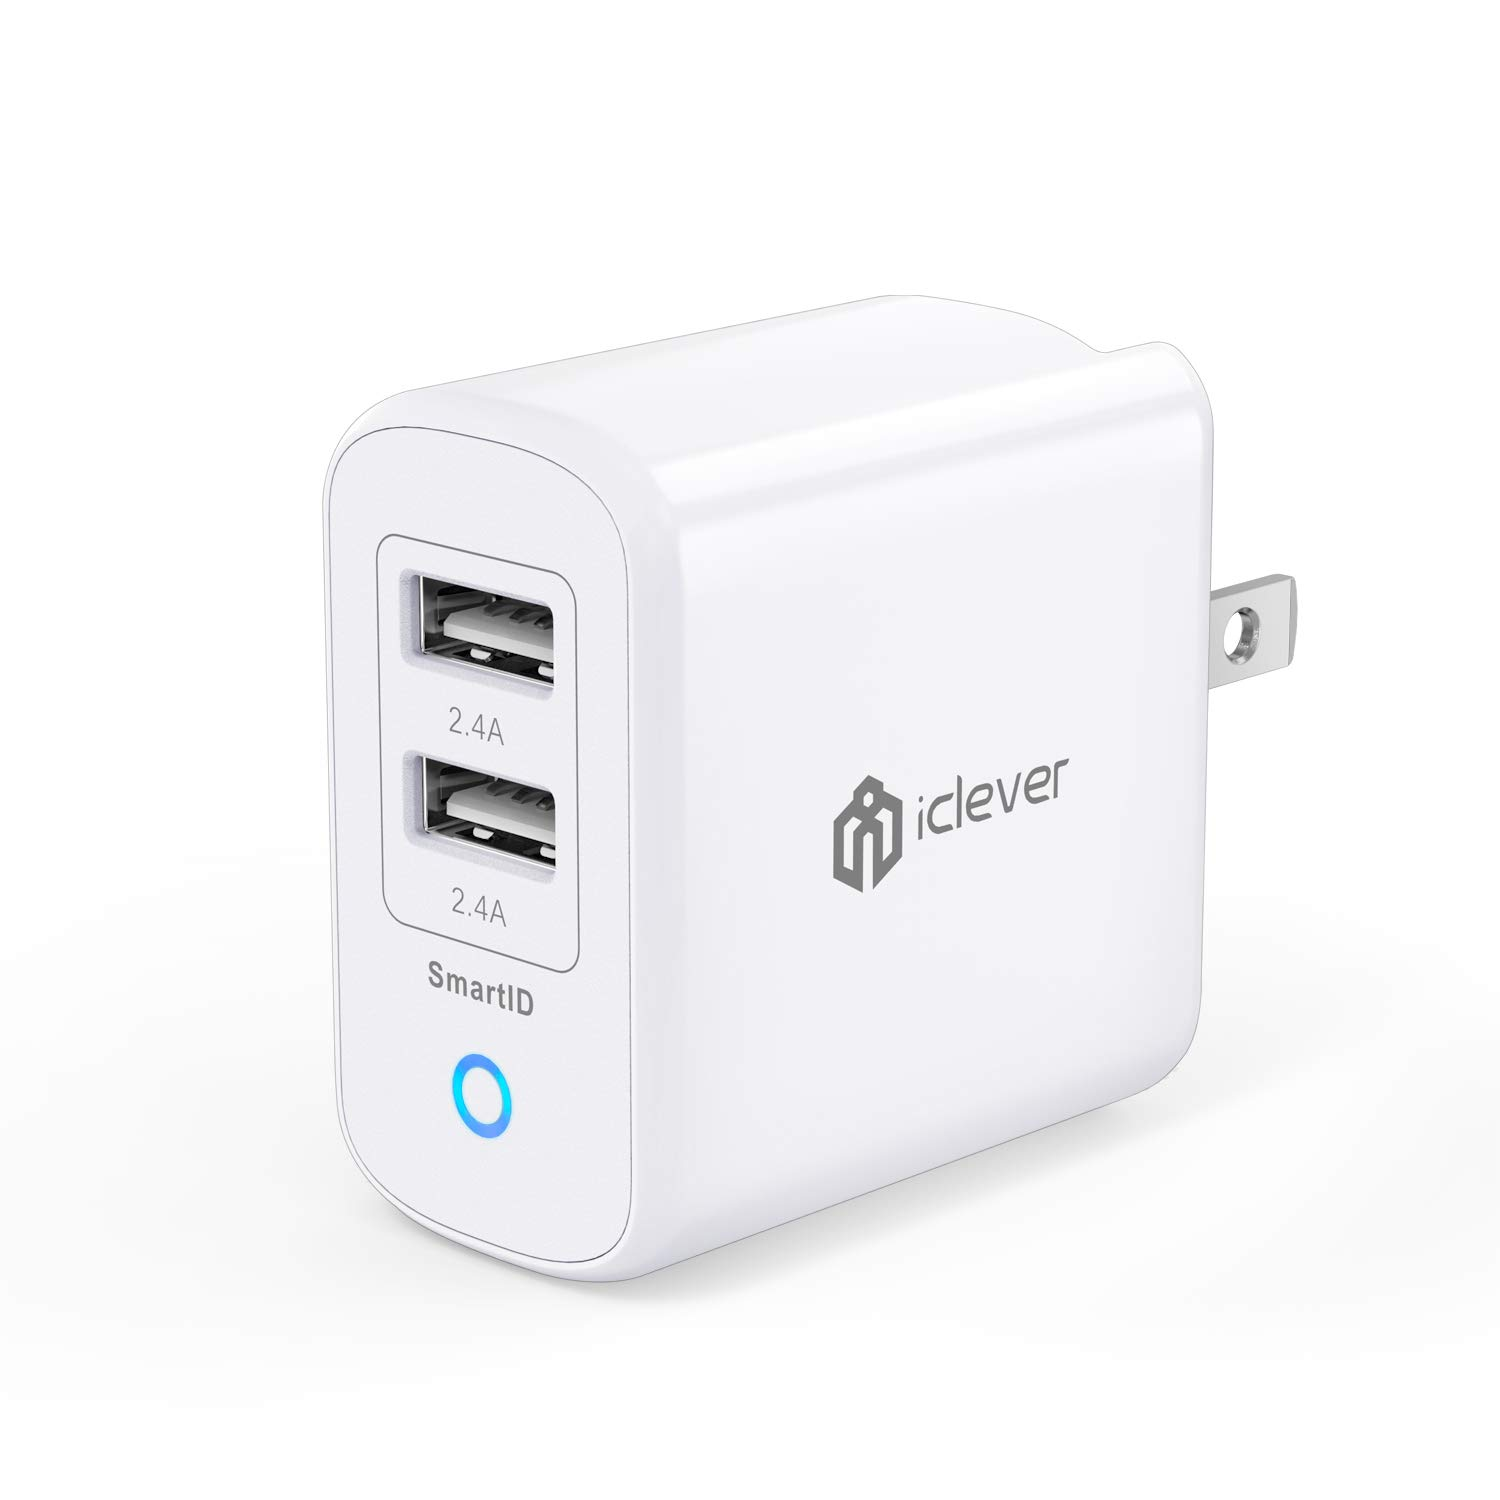 iClever BoostCube II USB Charger 24W Dual Wall Charger with SmartID Technology, Foldable Plug, for iPhone Xs/XS Max/XR/X/8/7/6/Plus, iPad Pro Air/Mini, Samsung S4/S5, HTC and More by iClever